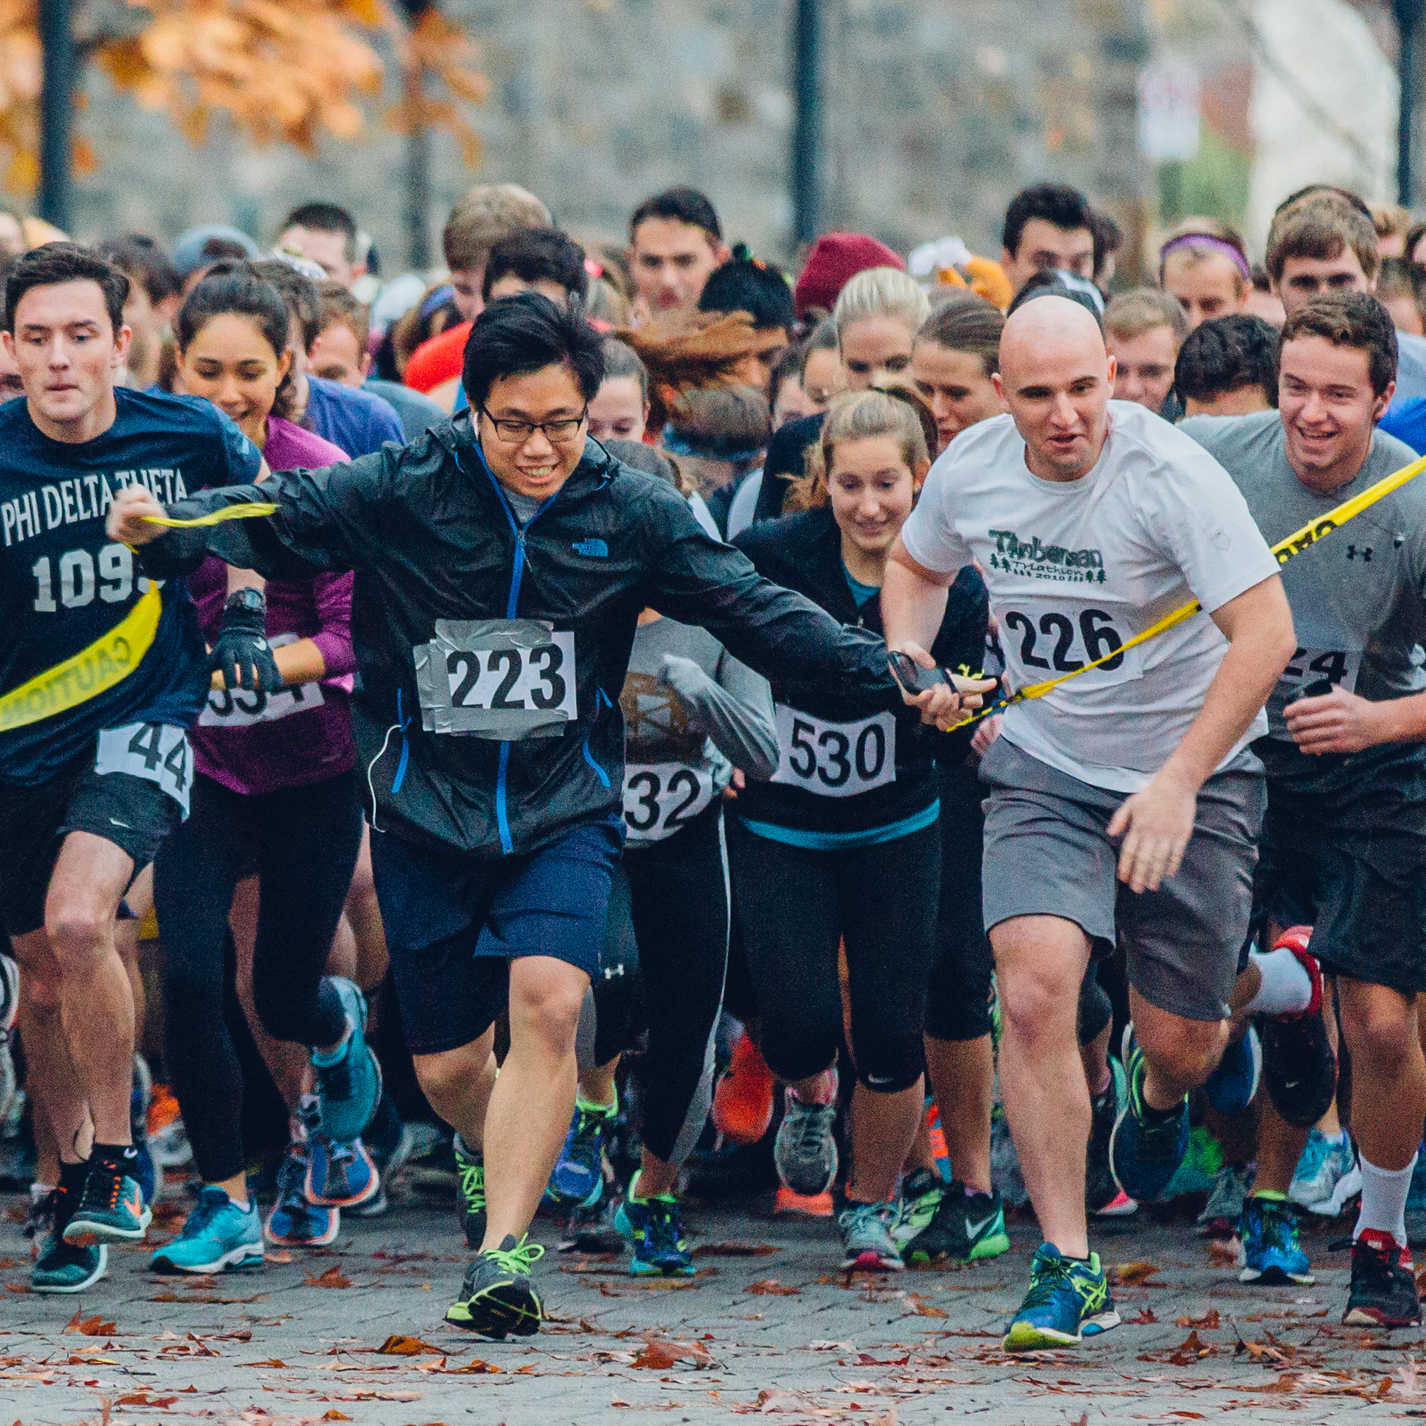 Lehigh's Turkey Trot